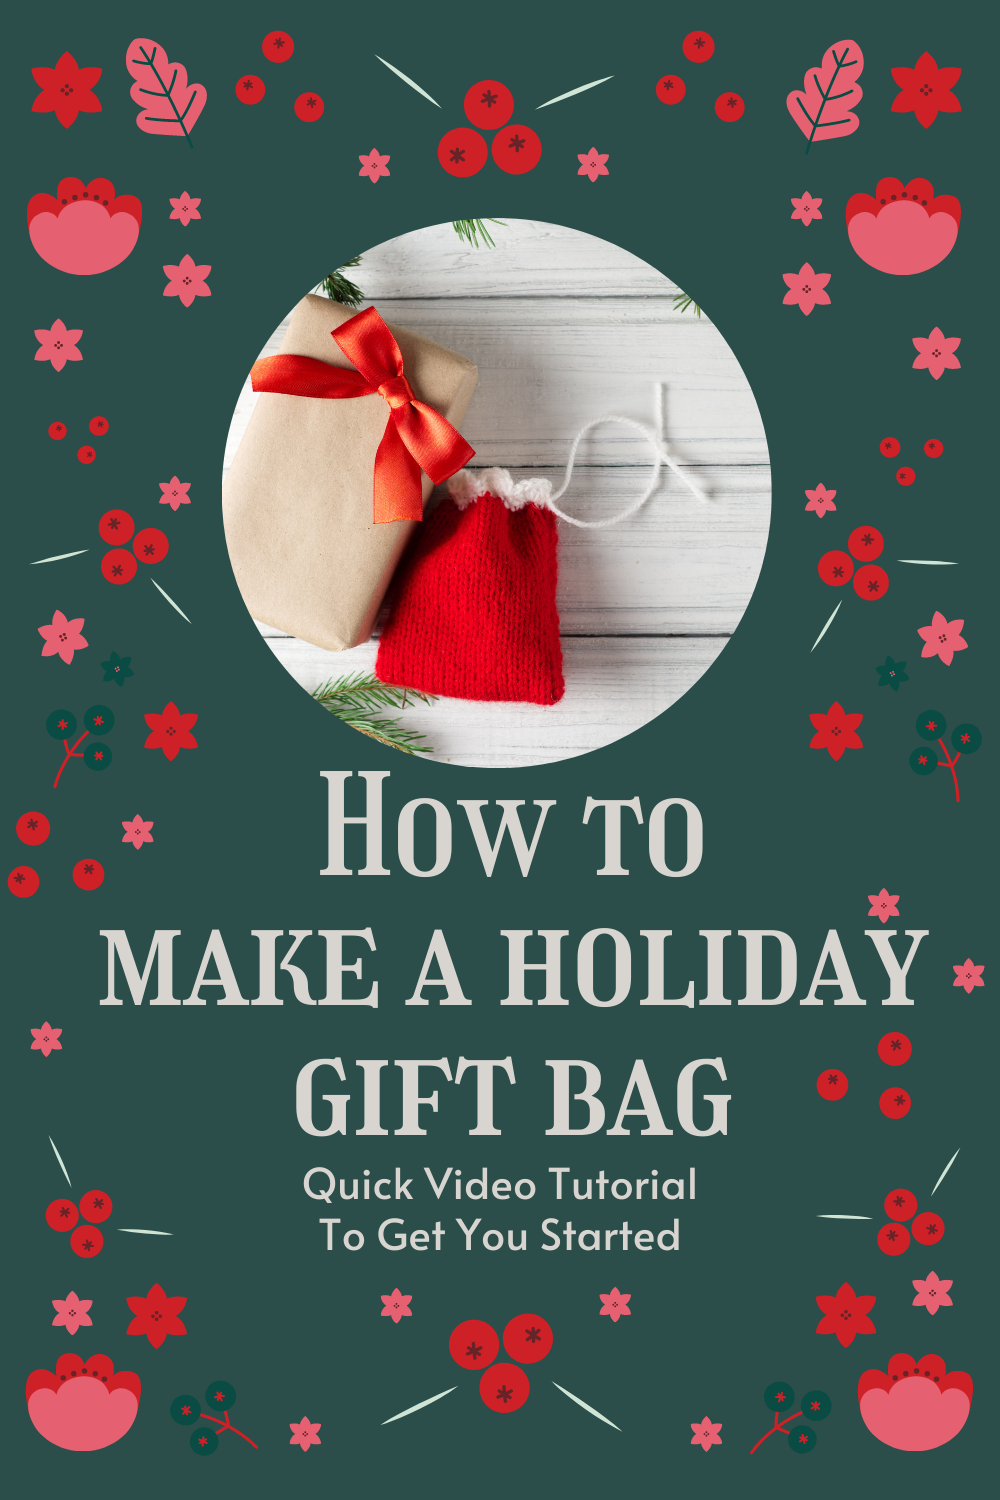 How to Make a Holiday Gift Bag